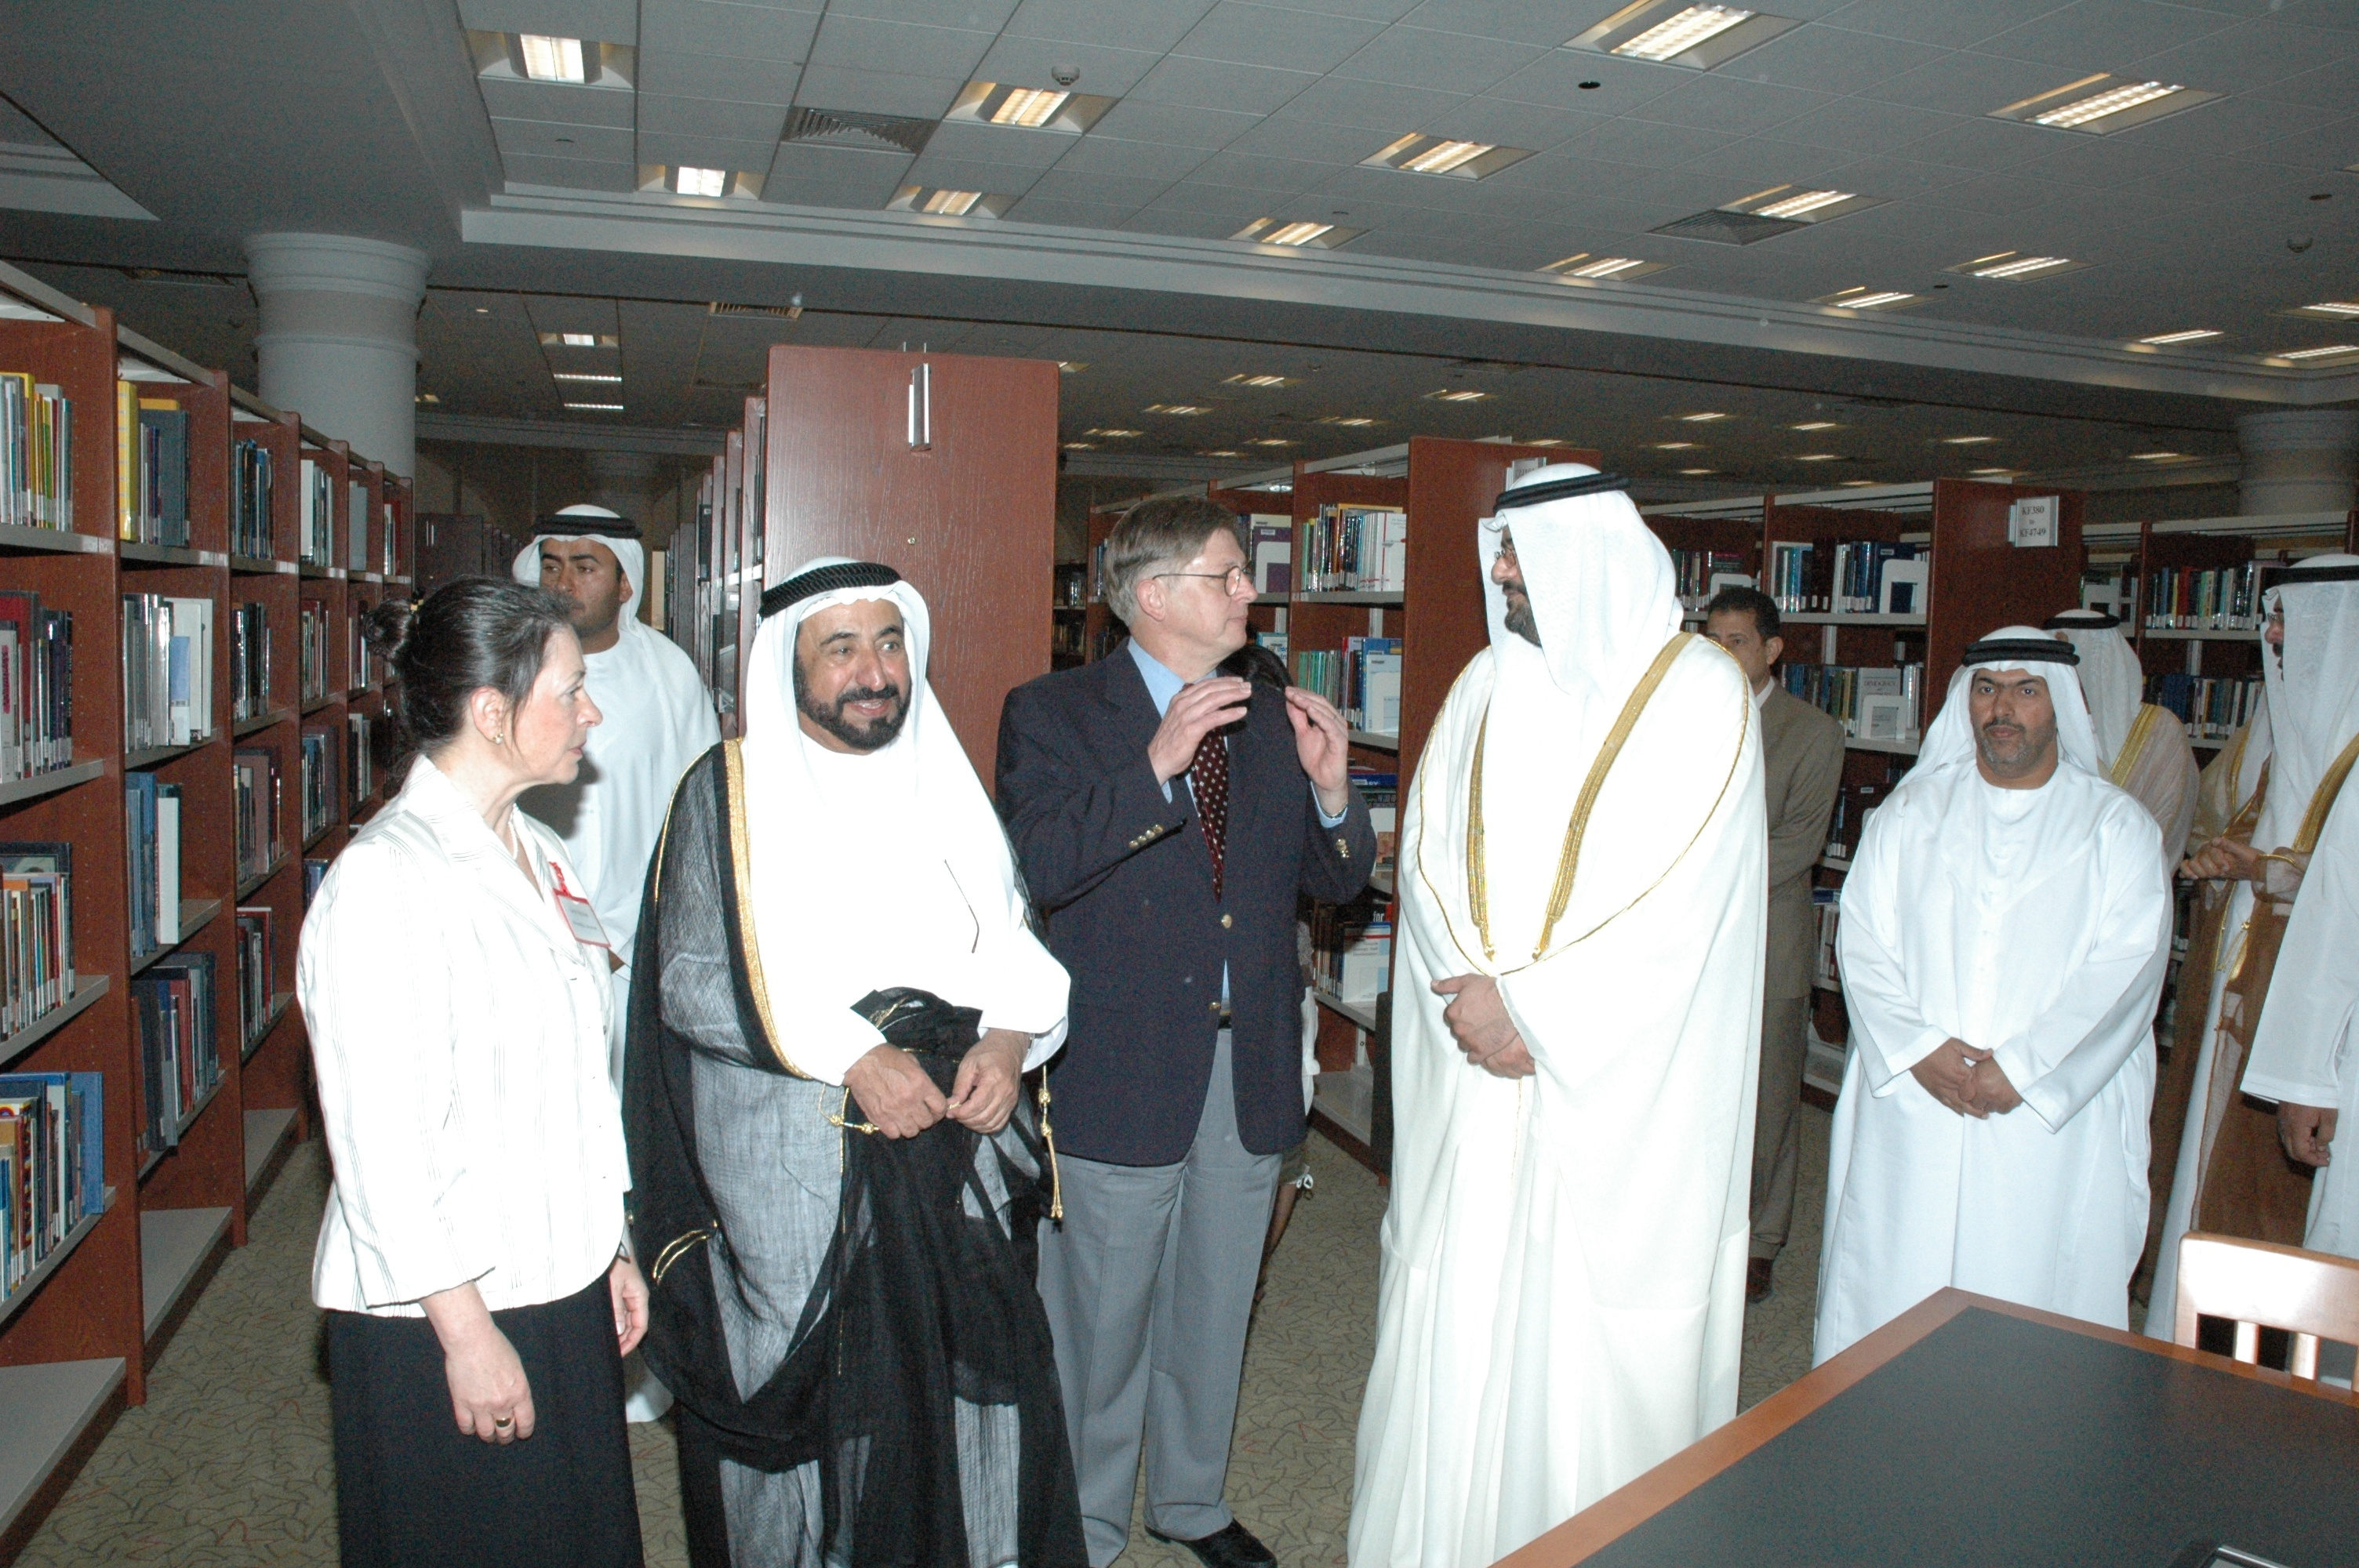 American_University_of_Sharjah_Library_6.jpg